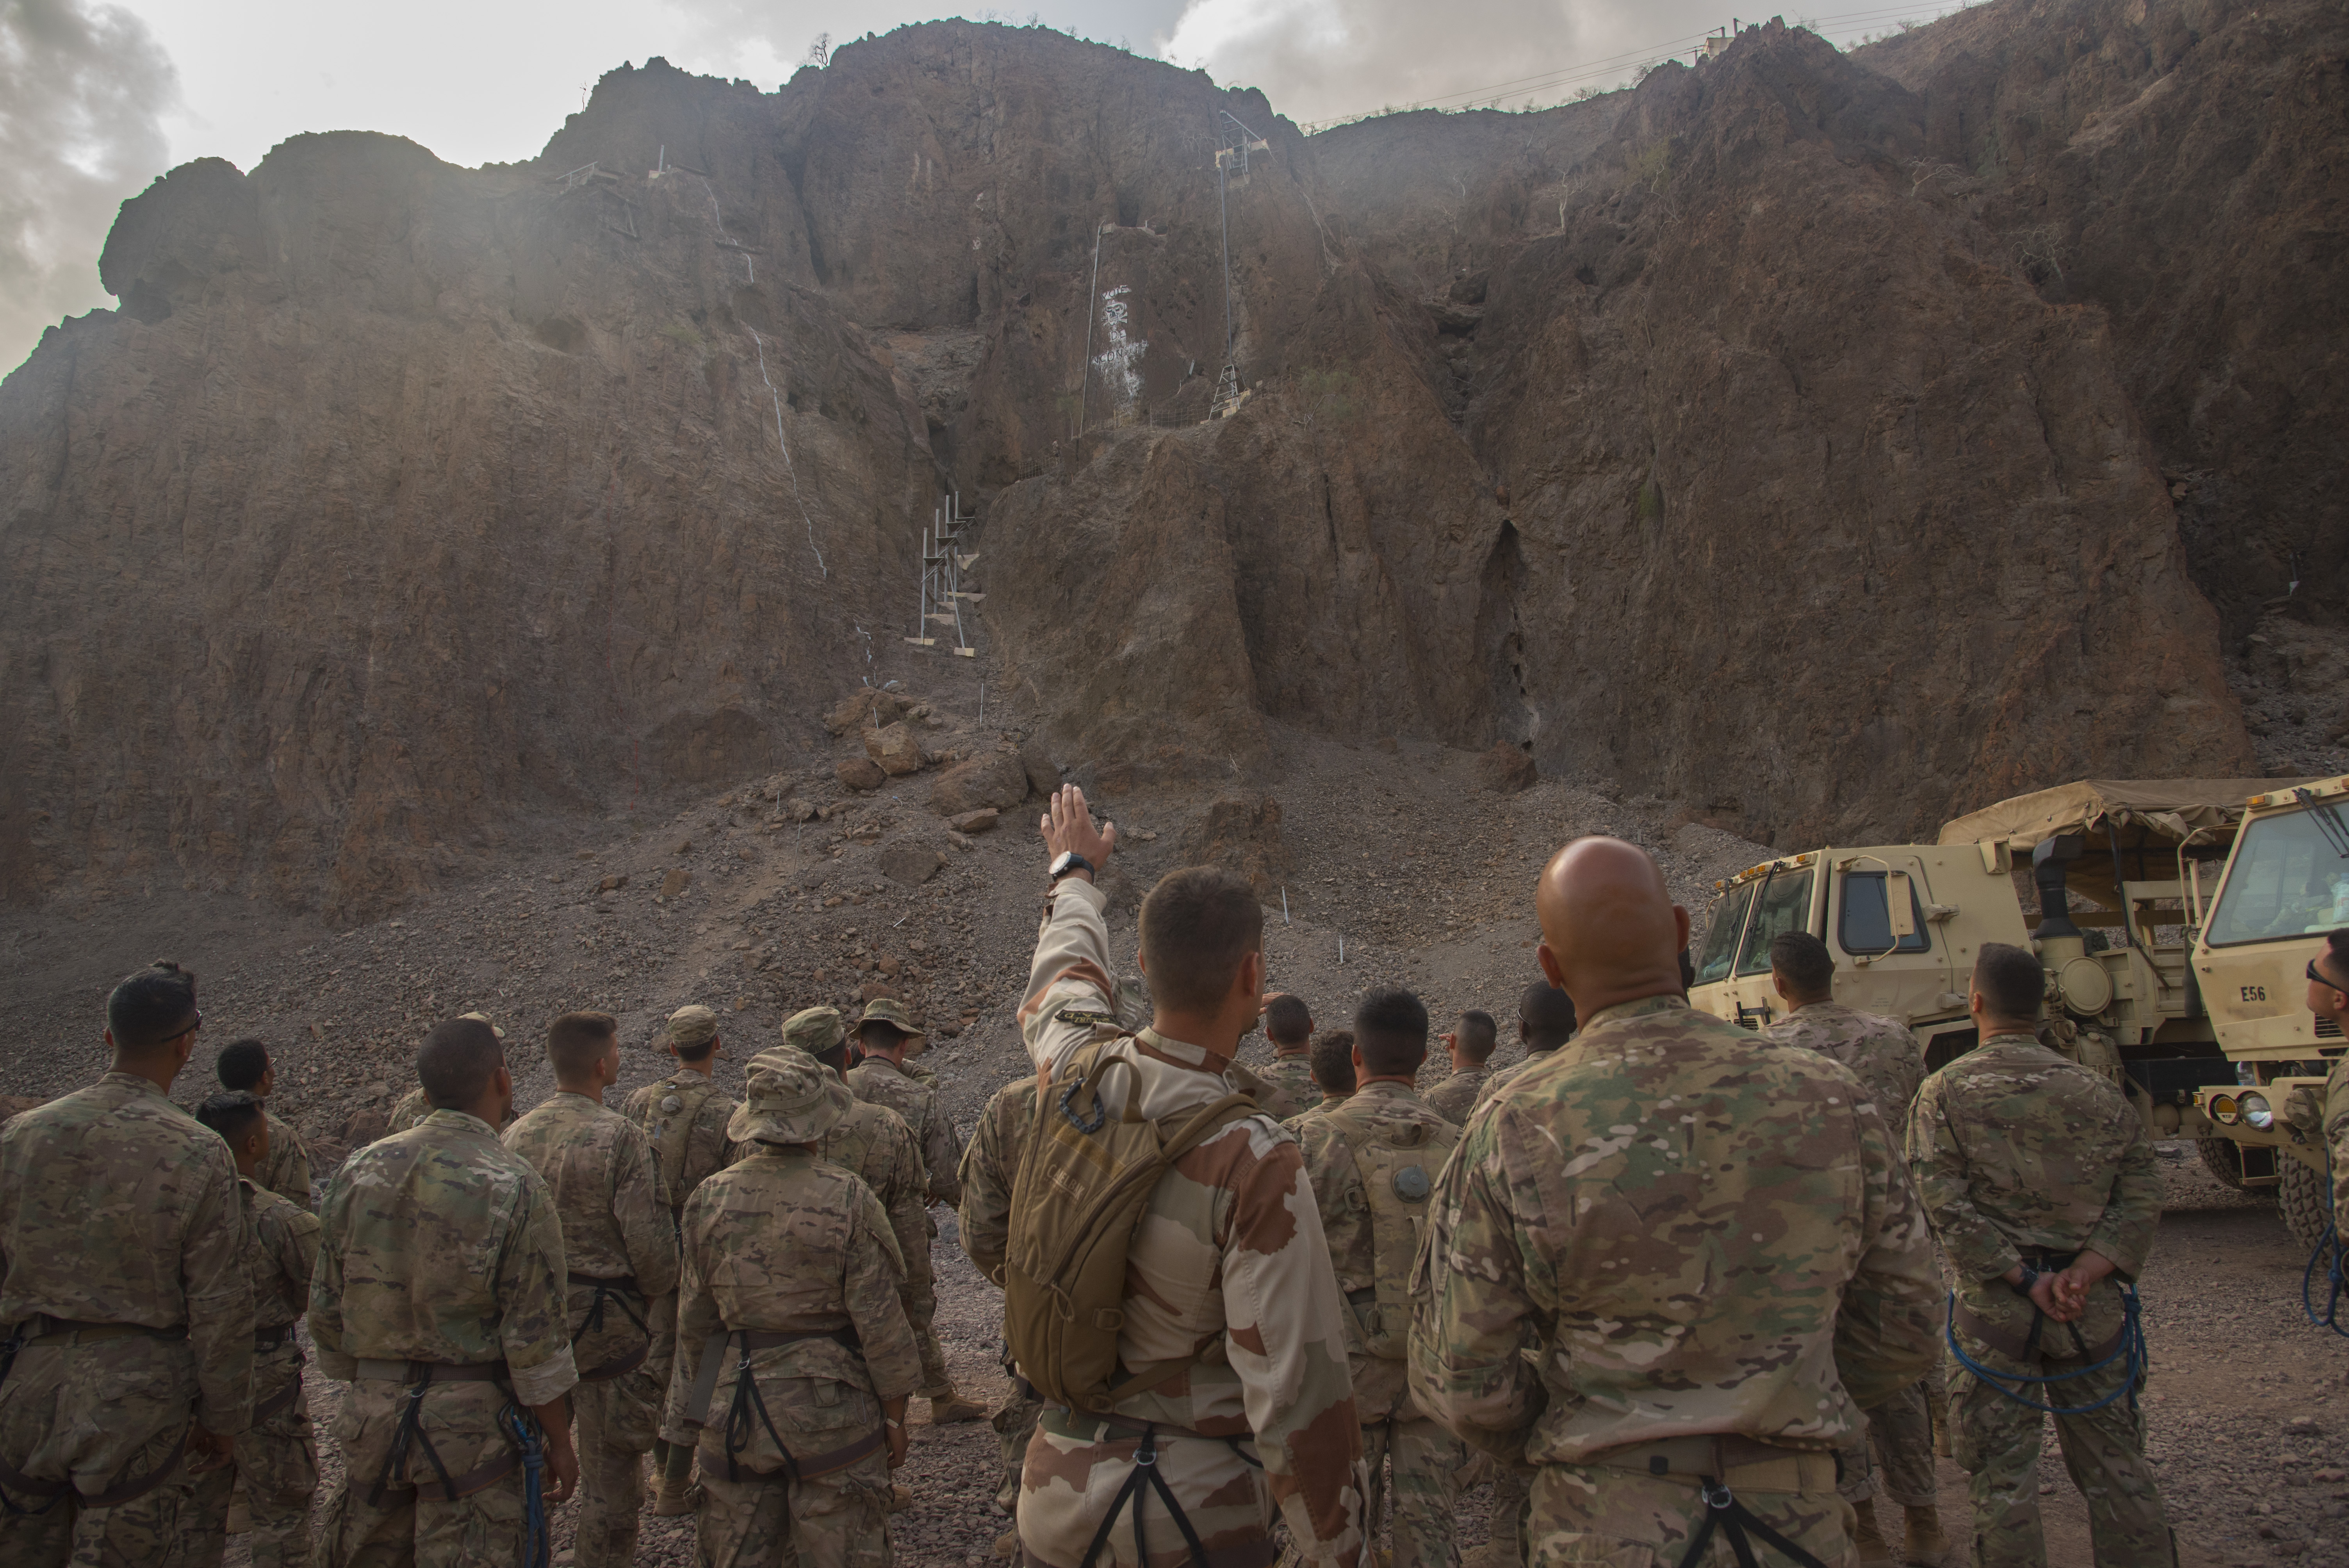 ARTA PLAGE, Djibouti – U.S. Army Soldiers from the 1st Battalion, 124th Infantry Regiment, assigned to Combined Joint Task Force-Horn of Africa, begin the the mountain obstacle course portion of the French Marines Desert Survival Course, Oct. 10, 2016, at Arta Plage, Djibouti. Approximately 46 U.S. Army Soldiers with French Marines completed several tasks during the survival course, including desert operations, combat lifesaving skills, weapons training, survival cooking, how to decontaminate water, and water and mountain obstacle courses. (U.S. Air Force photo by Staff Sgt. Tiffany DeNault)